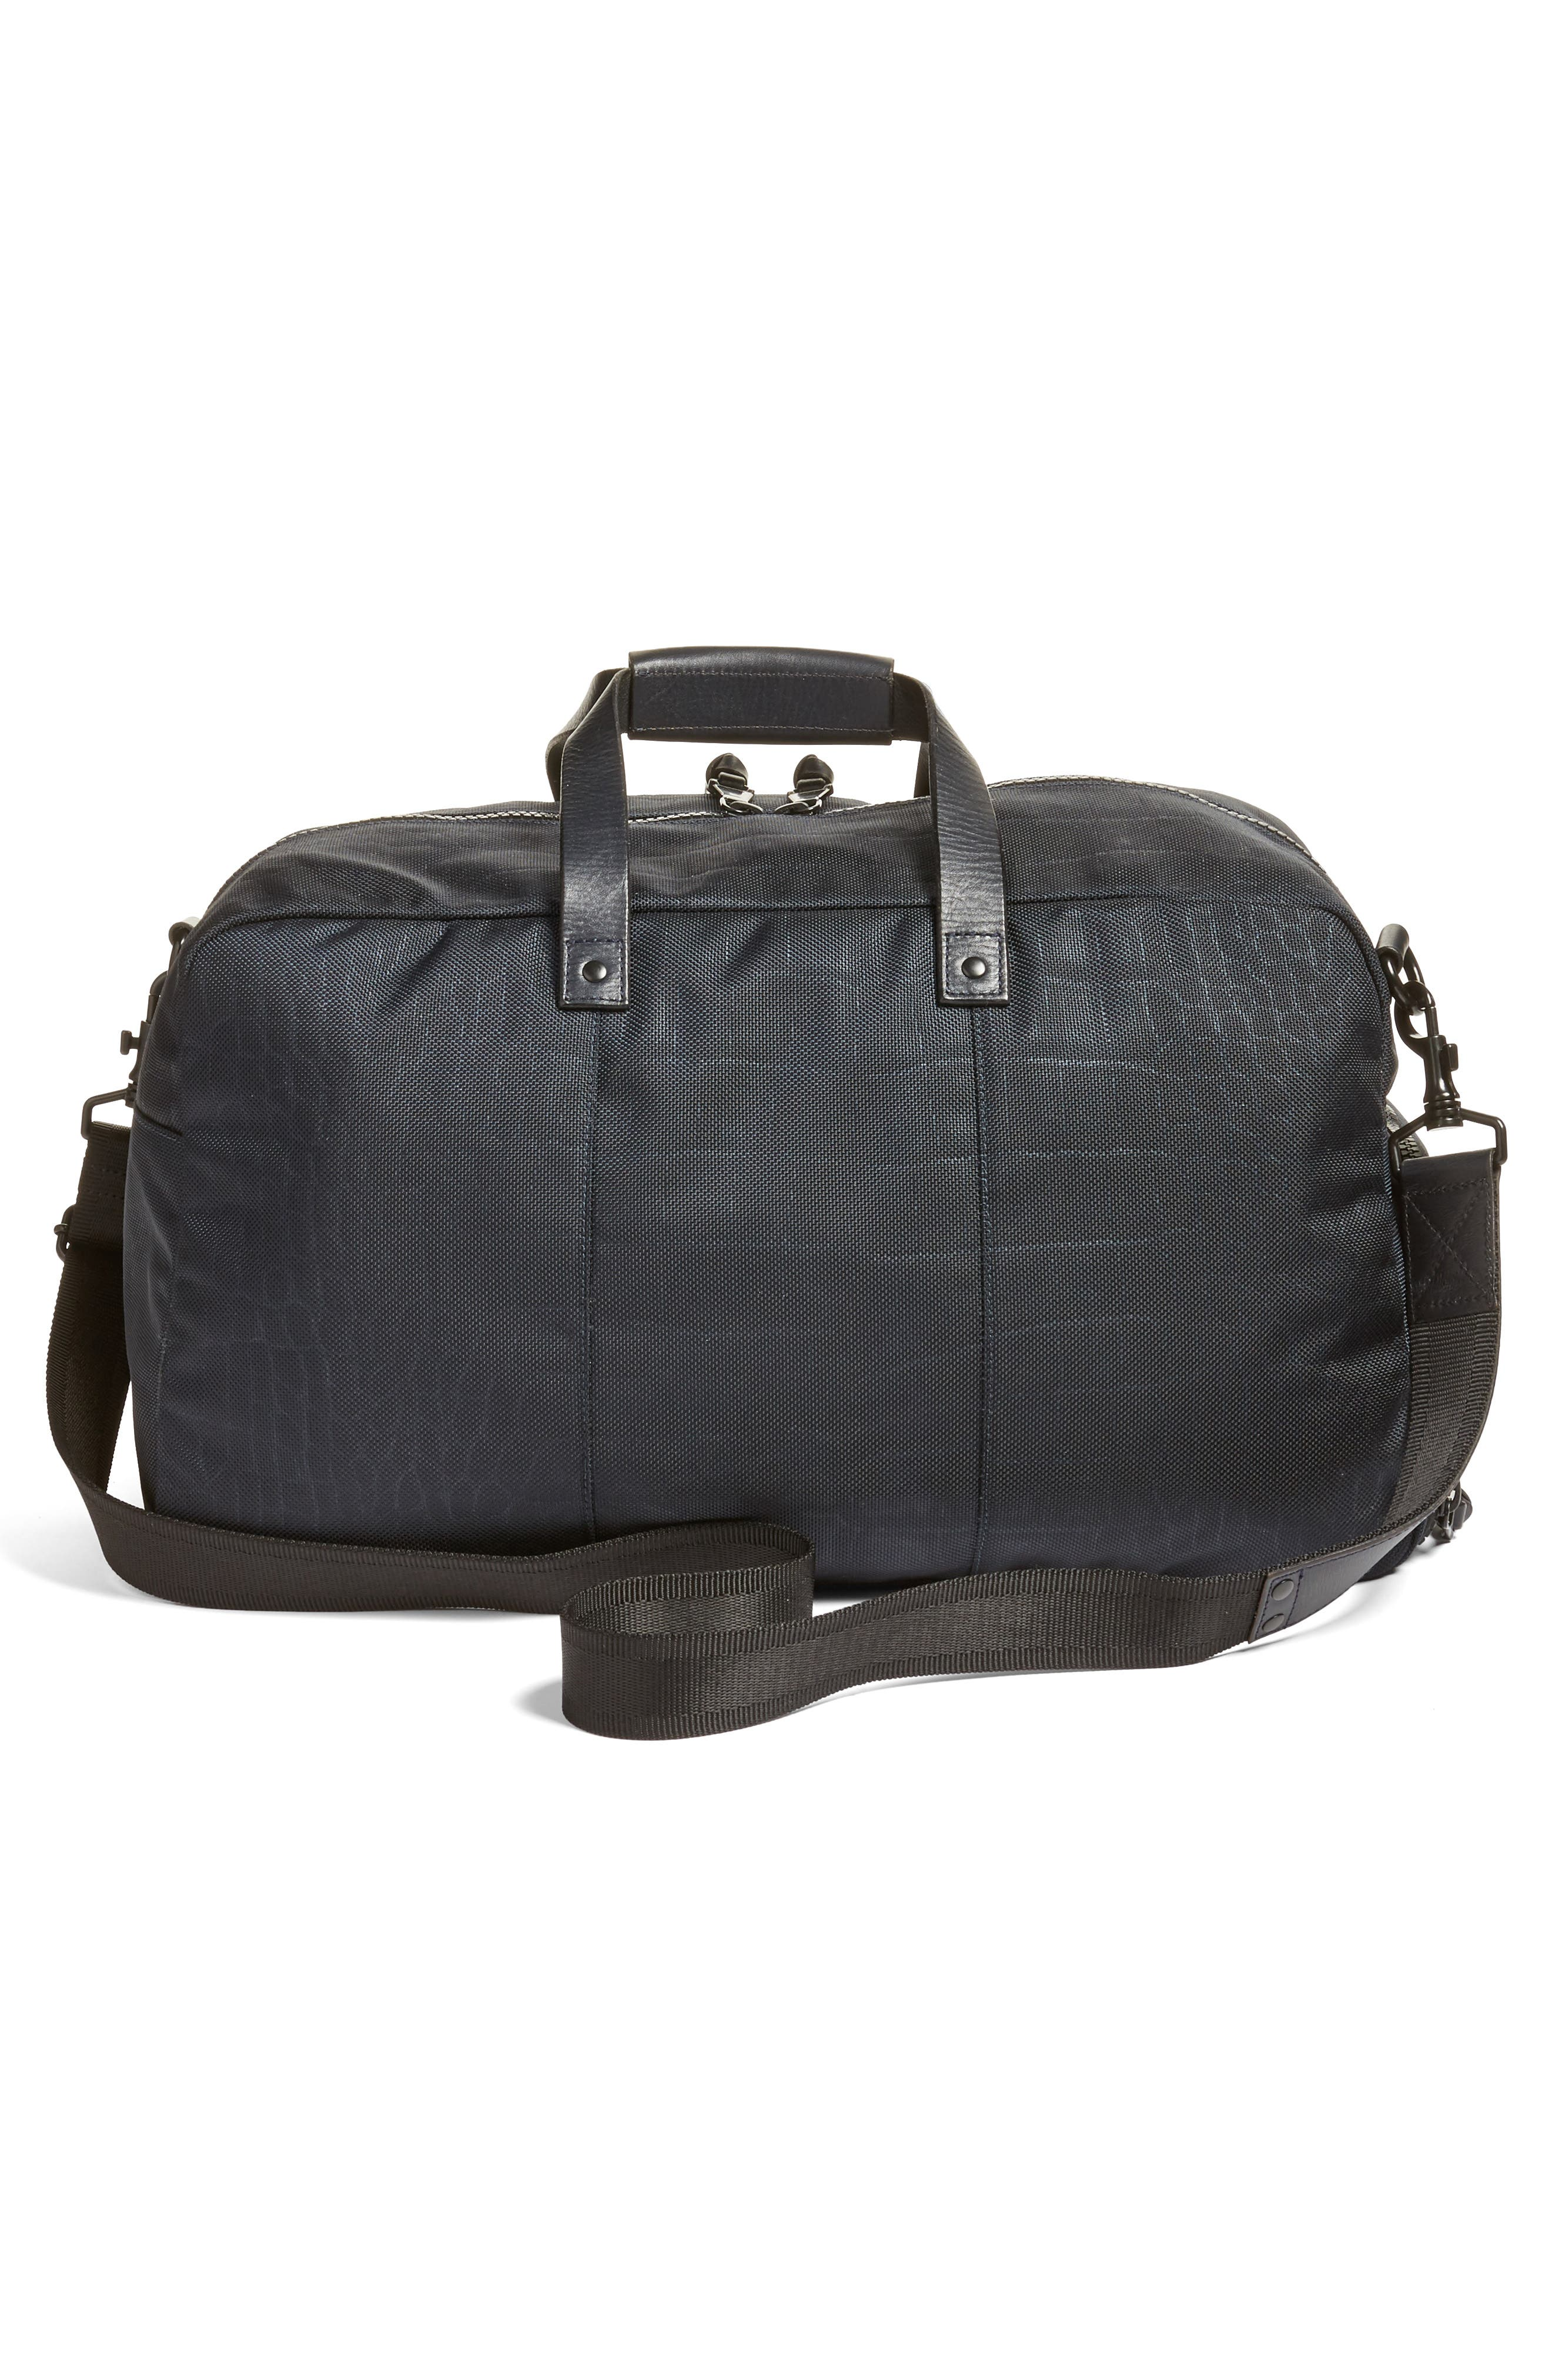 Duffel Bag,                             Alternate thumbnail 3, color,                             Navy